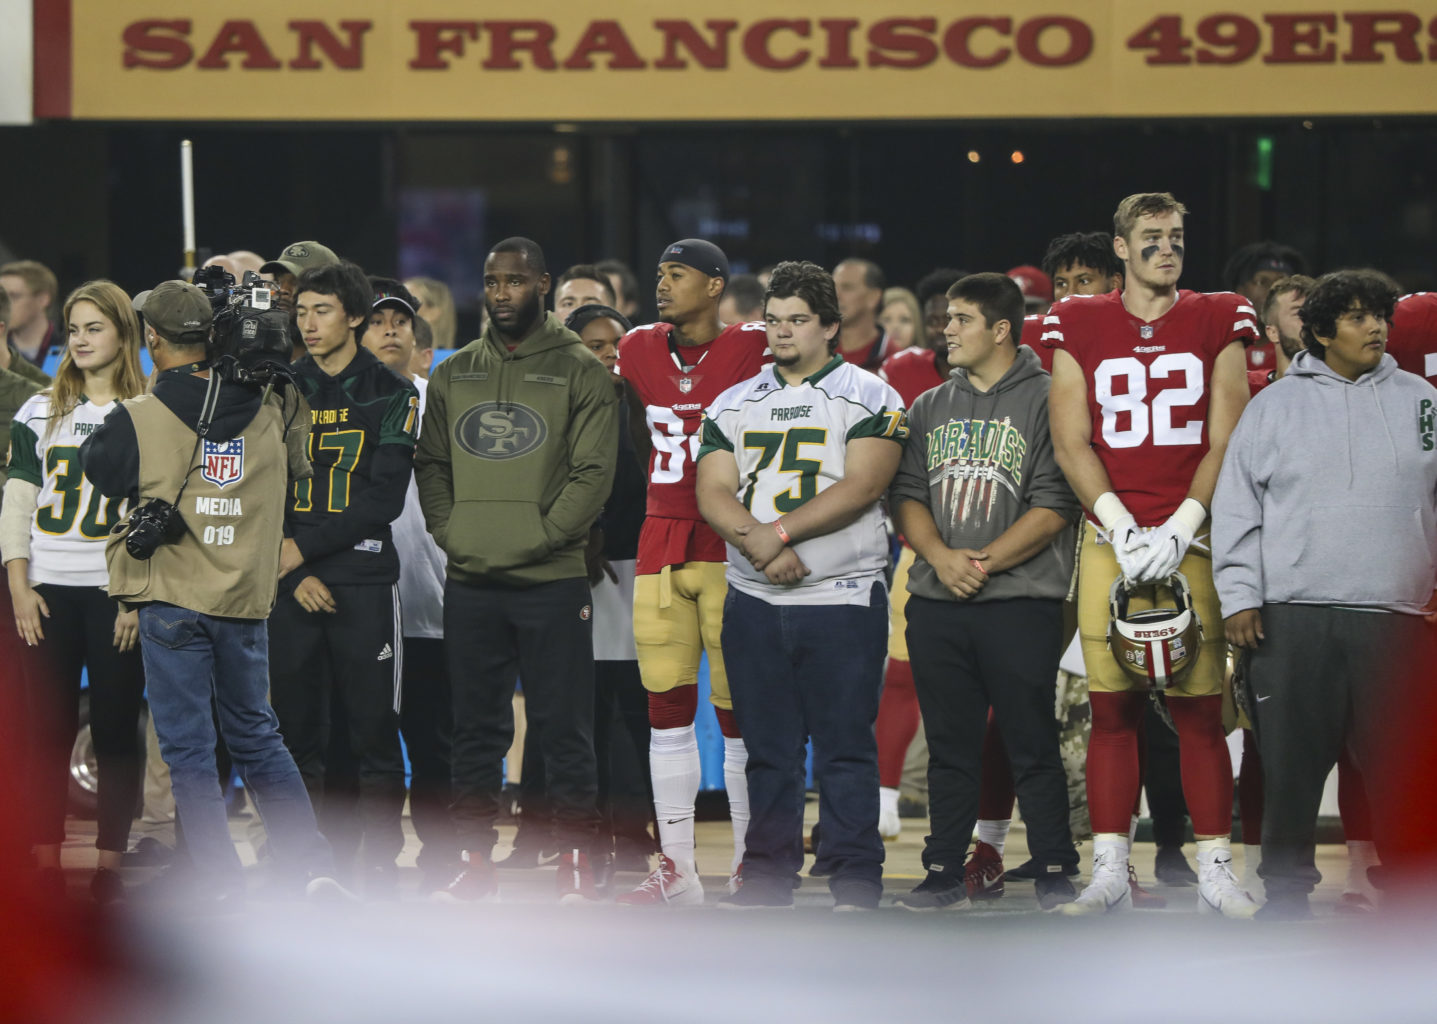 Members of the Paradise City High School student body join the San Francisco 49ers team bench during singing of the Nation Anthem before the NFL football game between the New York Giants and the San Francisco 49ers at Levi's Stadium on November 12, 2018 in Santa Clara, California. (Chris Victorio / Special to S.F. Examiner).